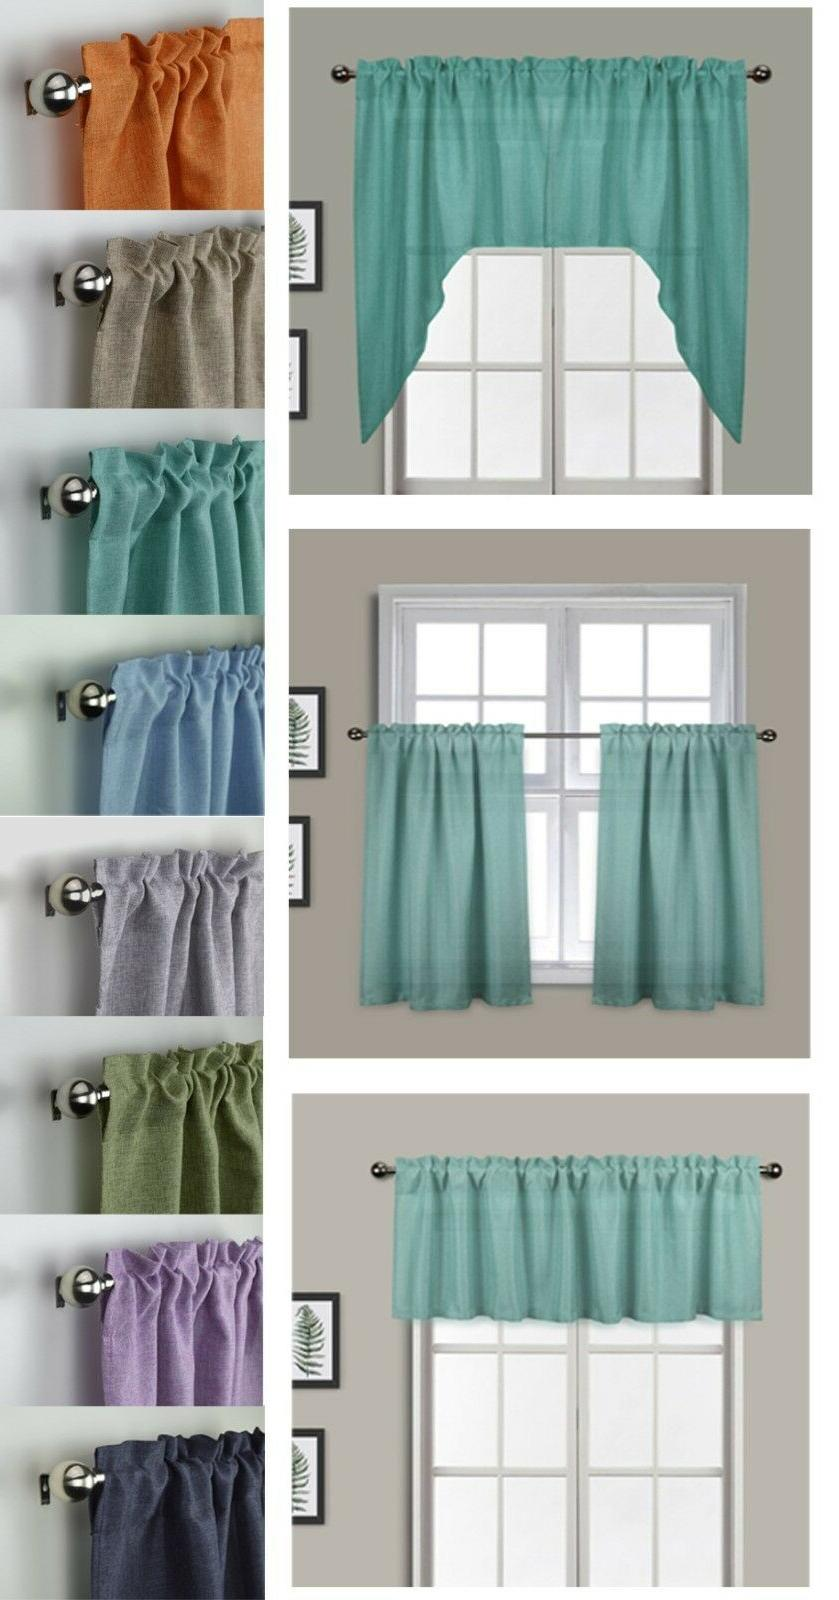 Aiking Home Semi-Sheer 36 inch Cafe Curtains / Tier Panels